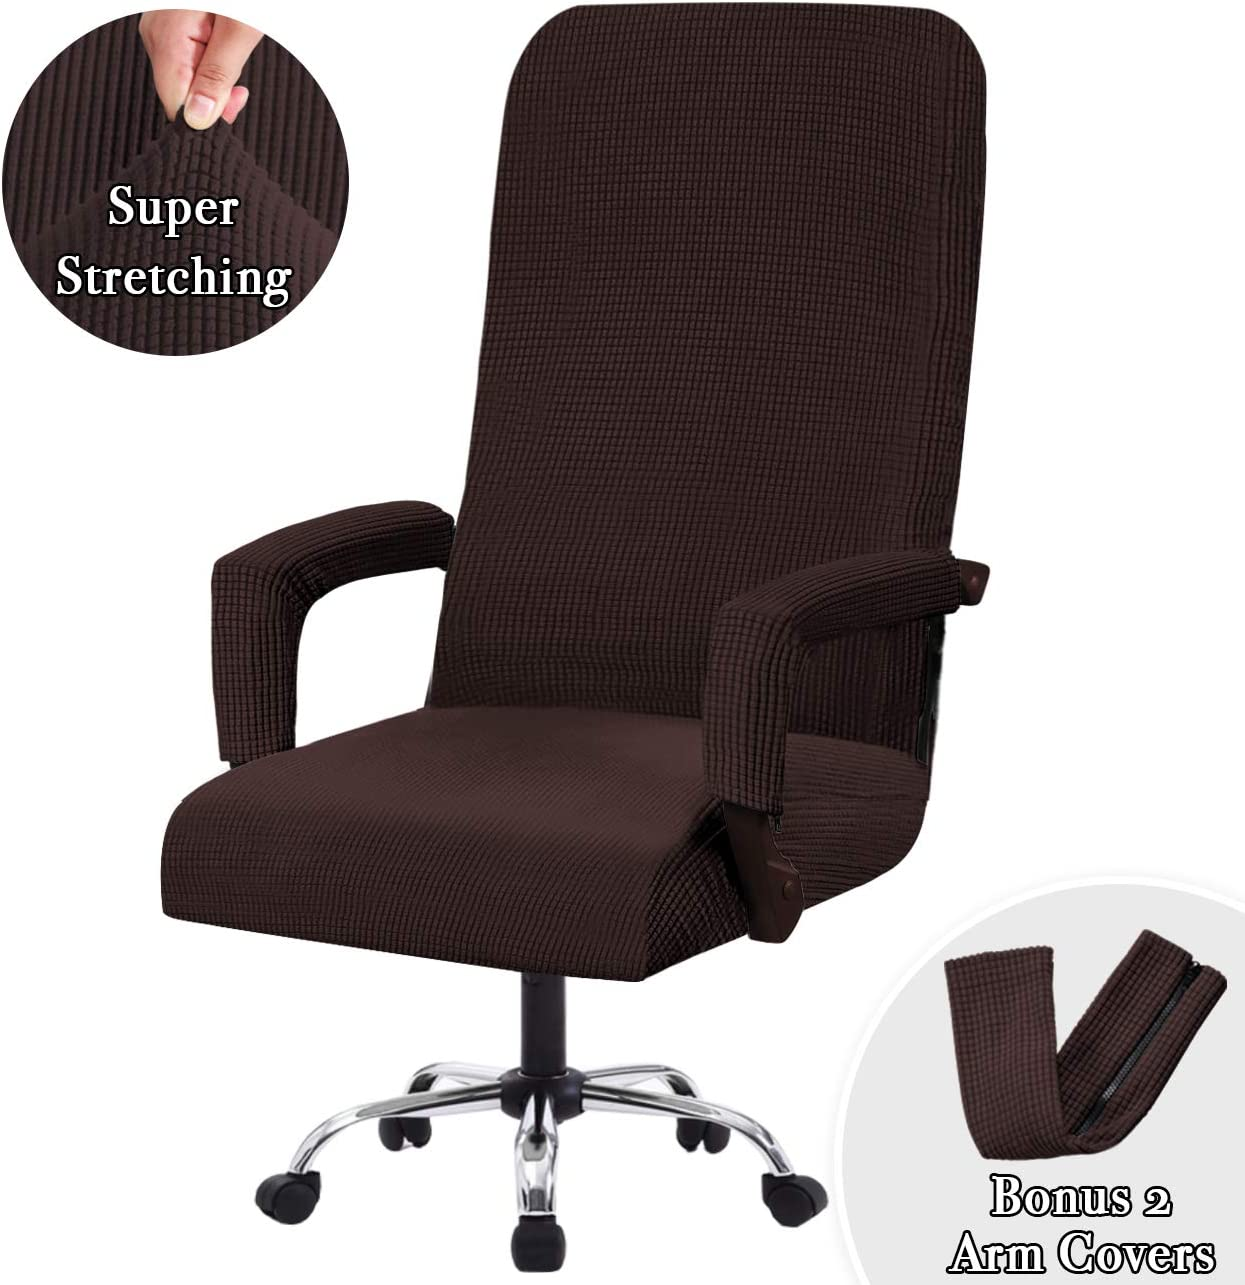 Office Chair Covers High Back Slipcovers Stretch Furniture Cover Lycra Spandex Jacquard Fabric Super Soft, Skid Resistant Office Computer Chair Cover with Arm Covers, Oversized, Brown